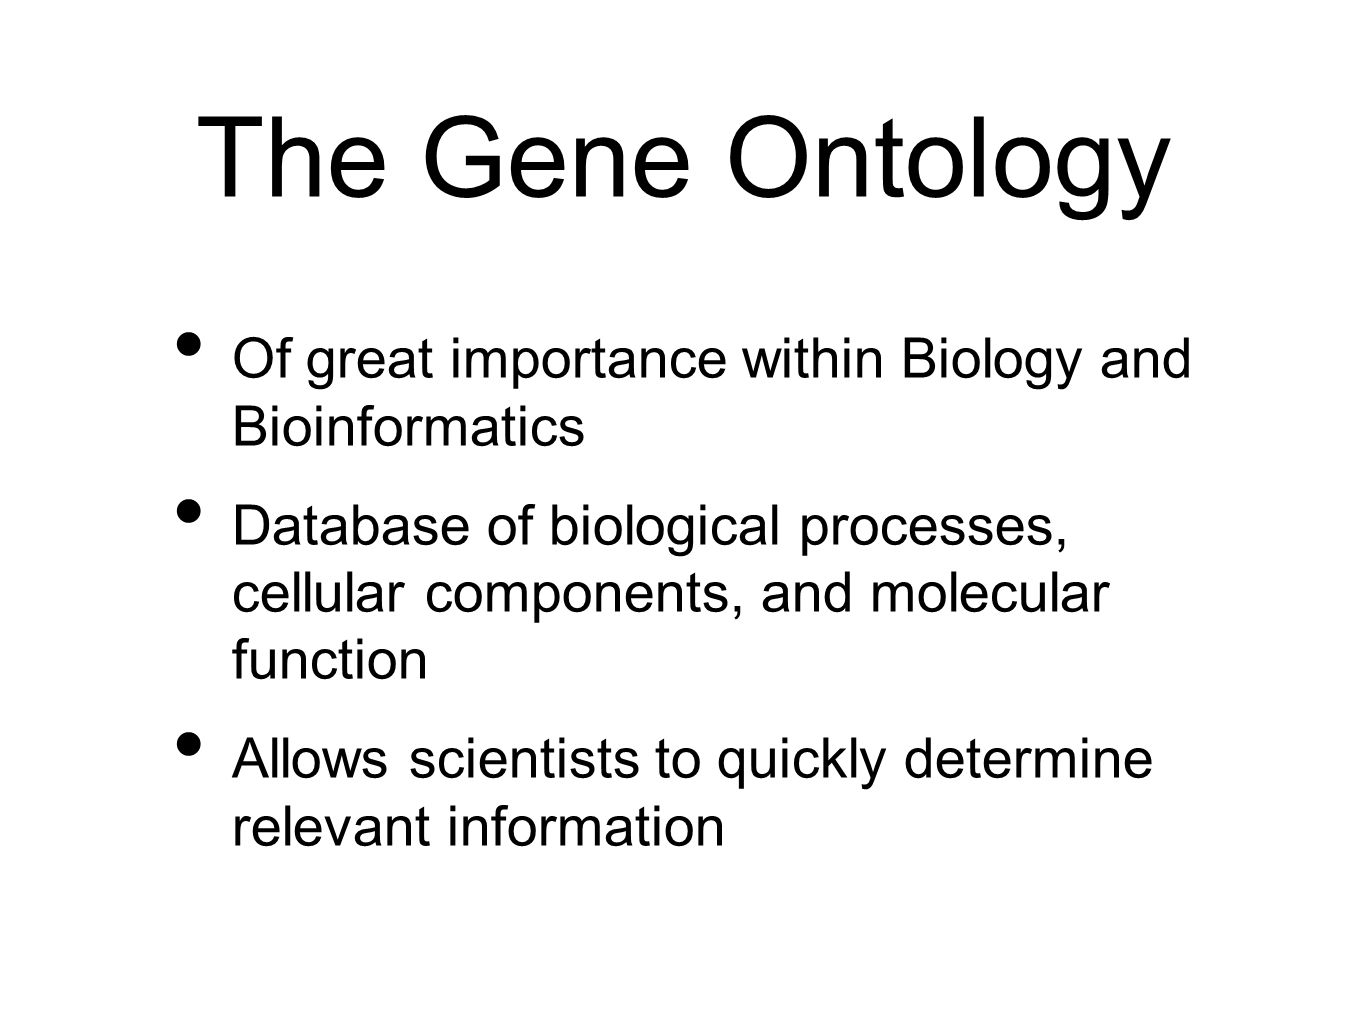 The Gene Ontology Of great importance within Biology and Bioinformatics Database of biological processes, cellular components, and molecular function